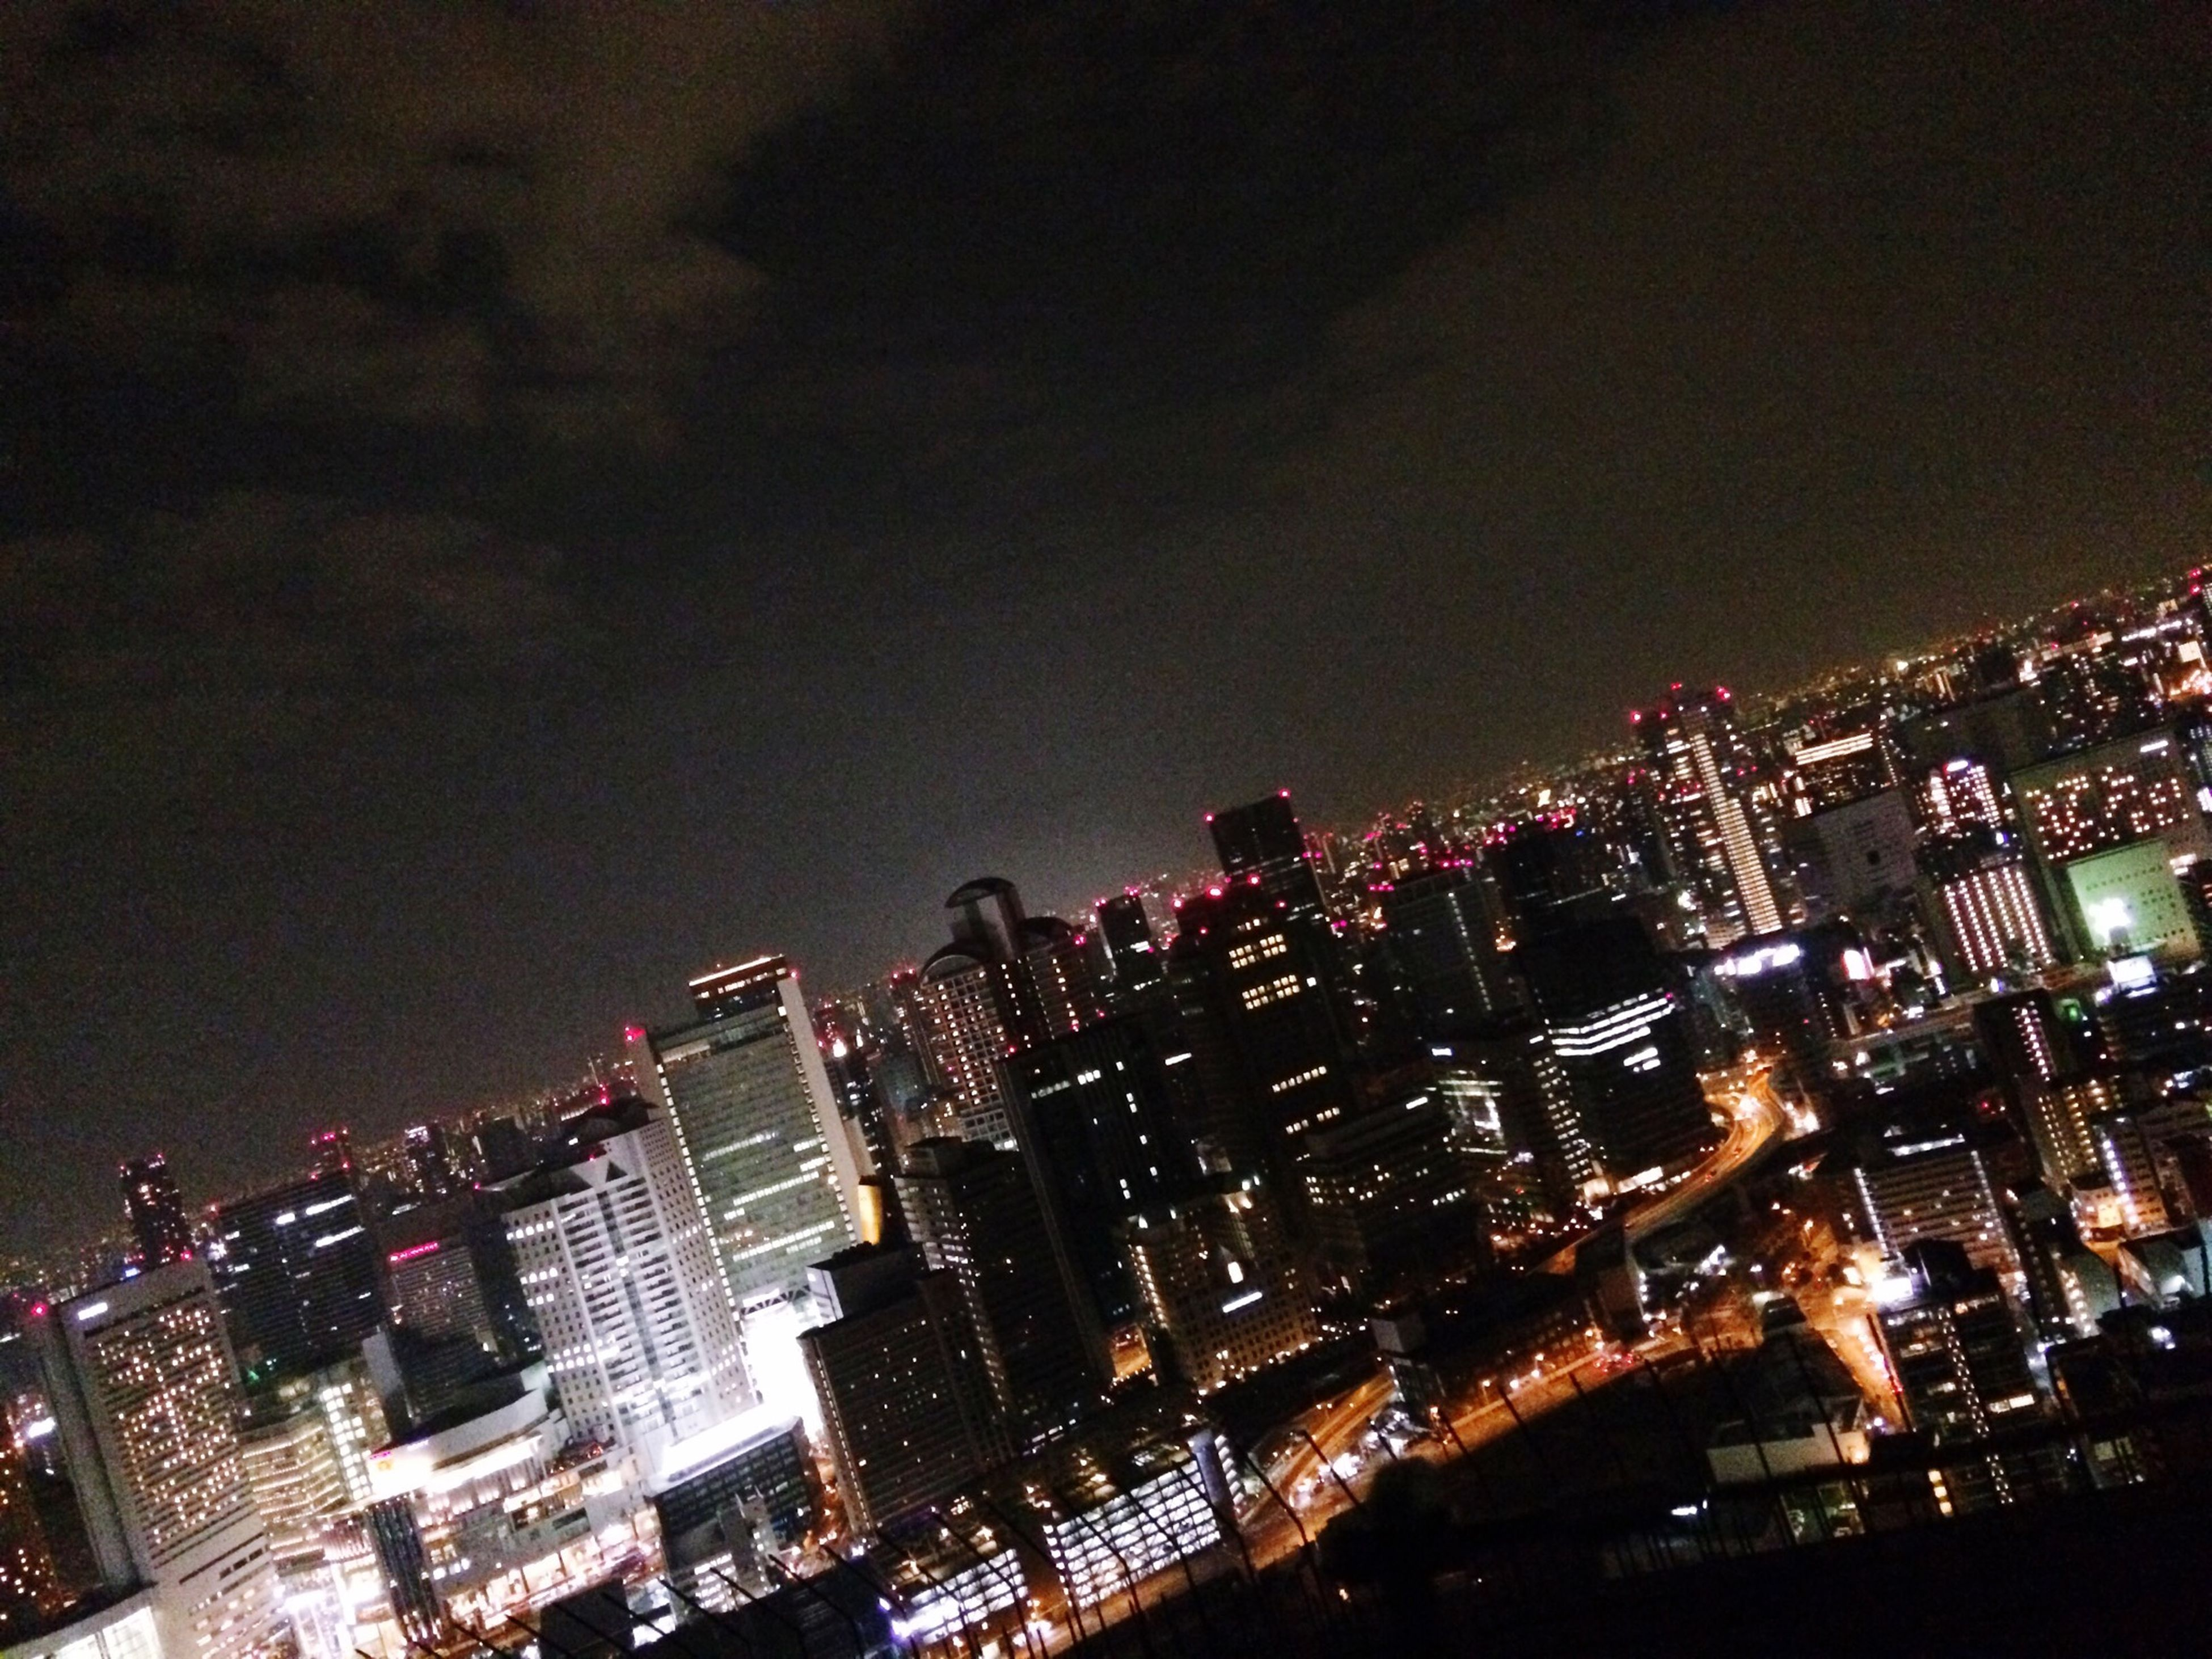 night, illuminated, city, building exterior, architecture, cityscape, built structure, skyscraper, modern, sky, tall - high, tower, office building, crowded, urban skyline, city life, financial district, high angle view, residential building, capital cities